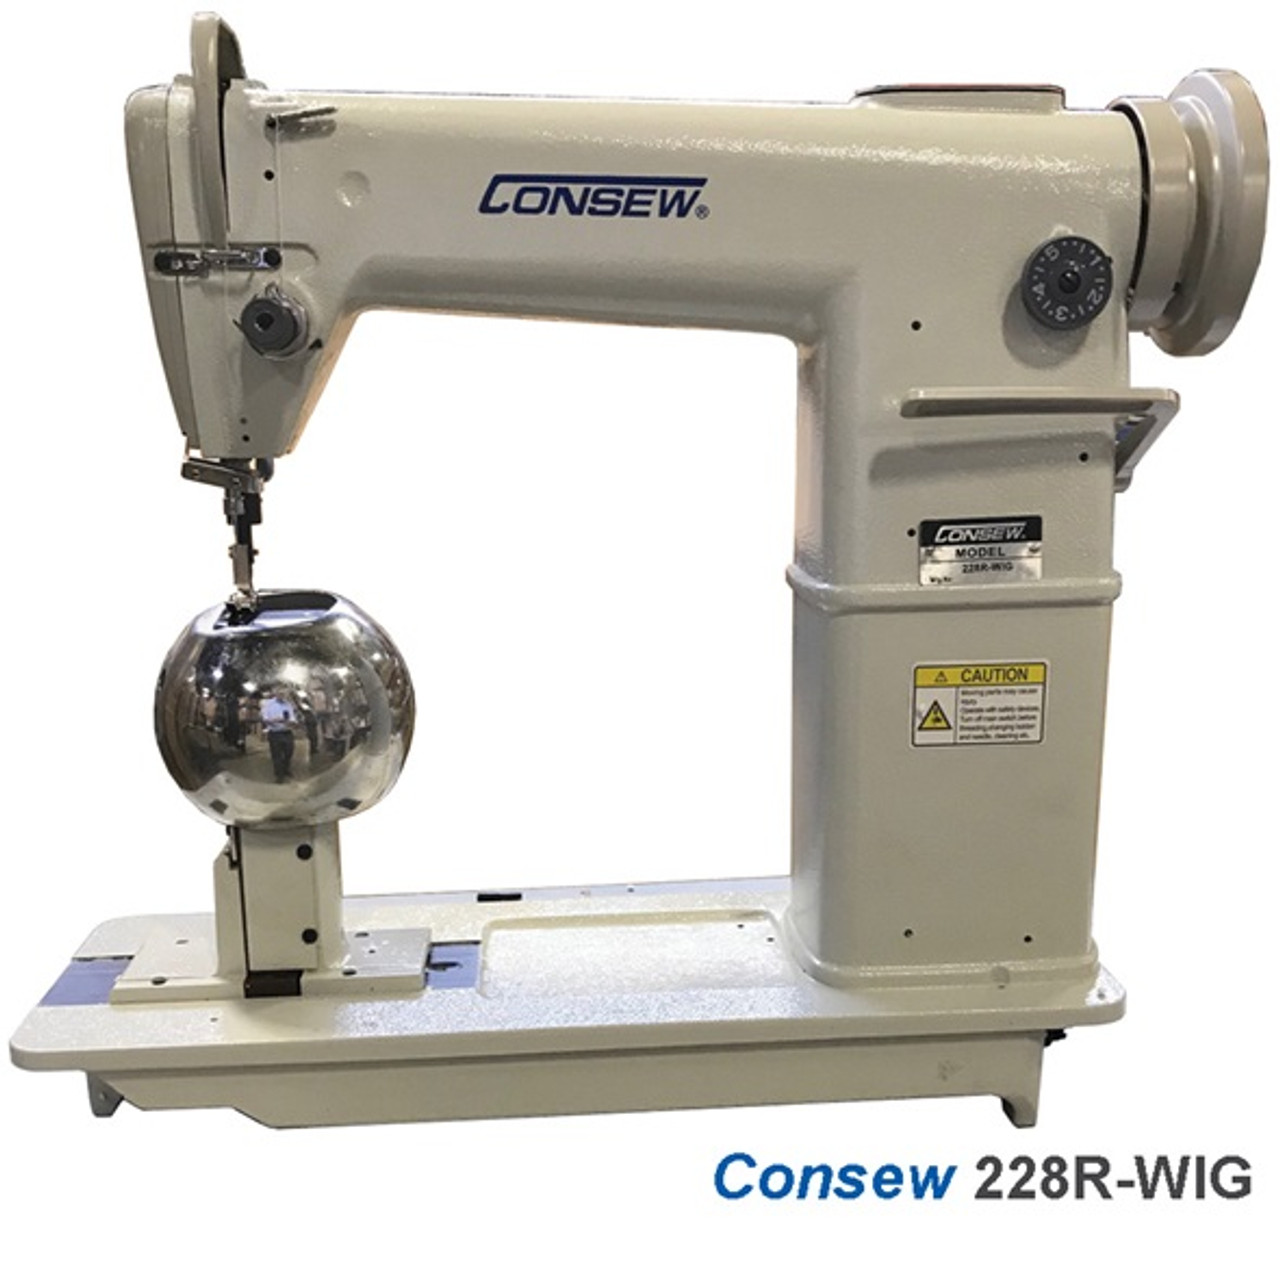 Consew 228R-WIG